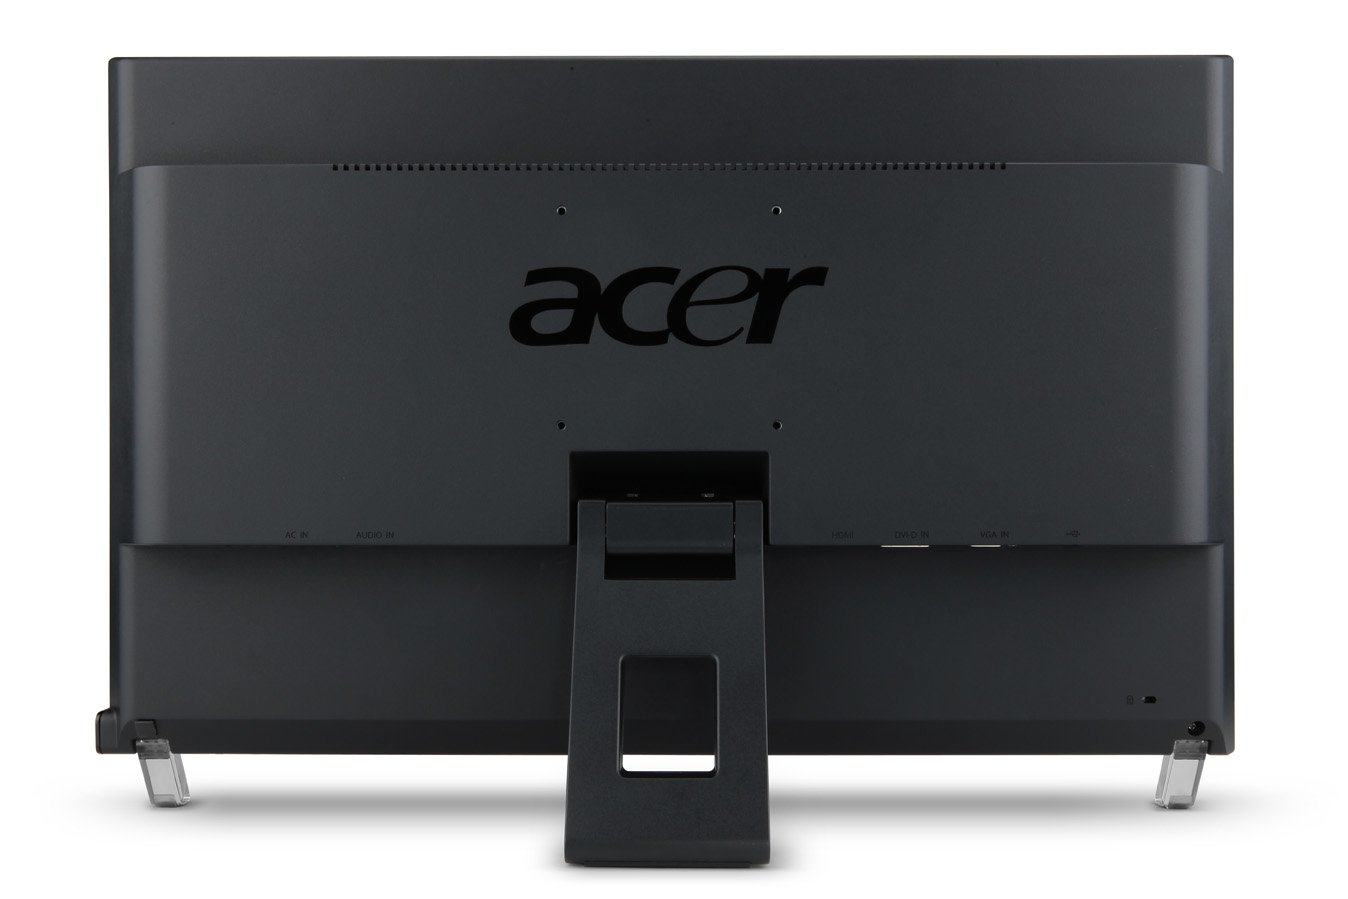 ACER T SERIES T231H DRIVERS FOR WINDOWS 10